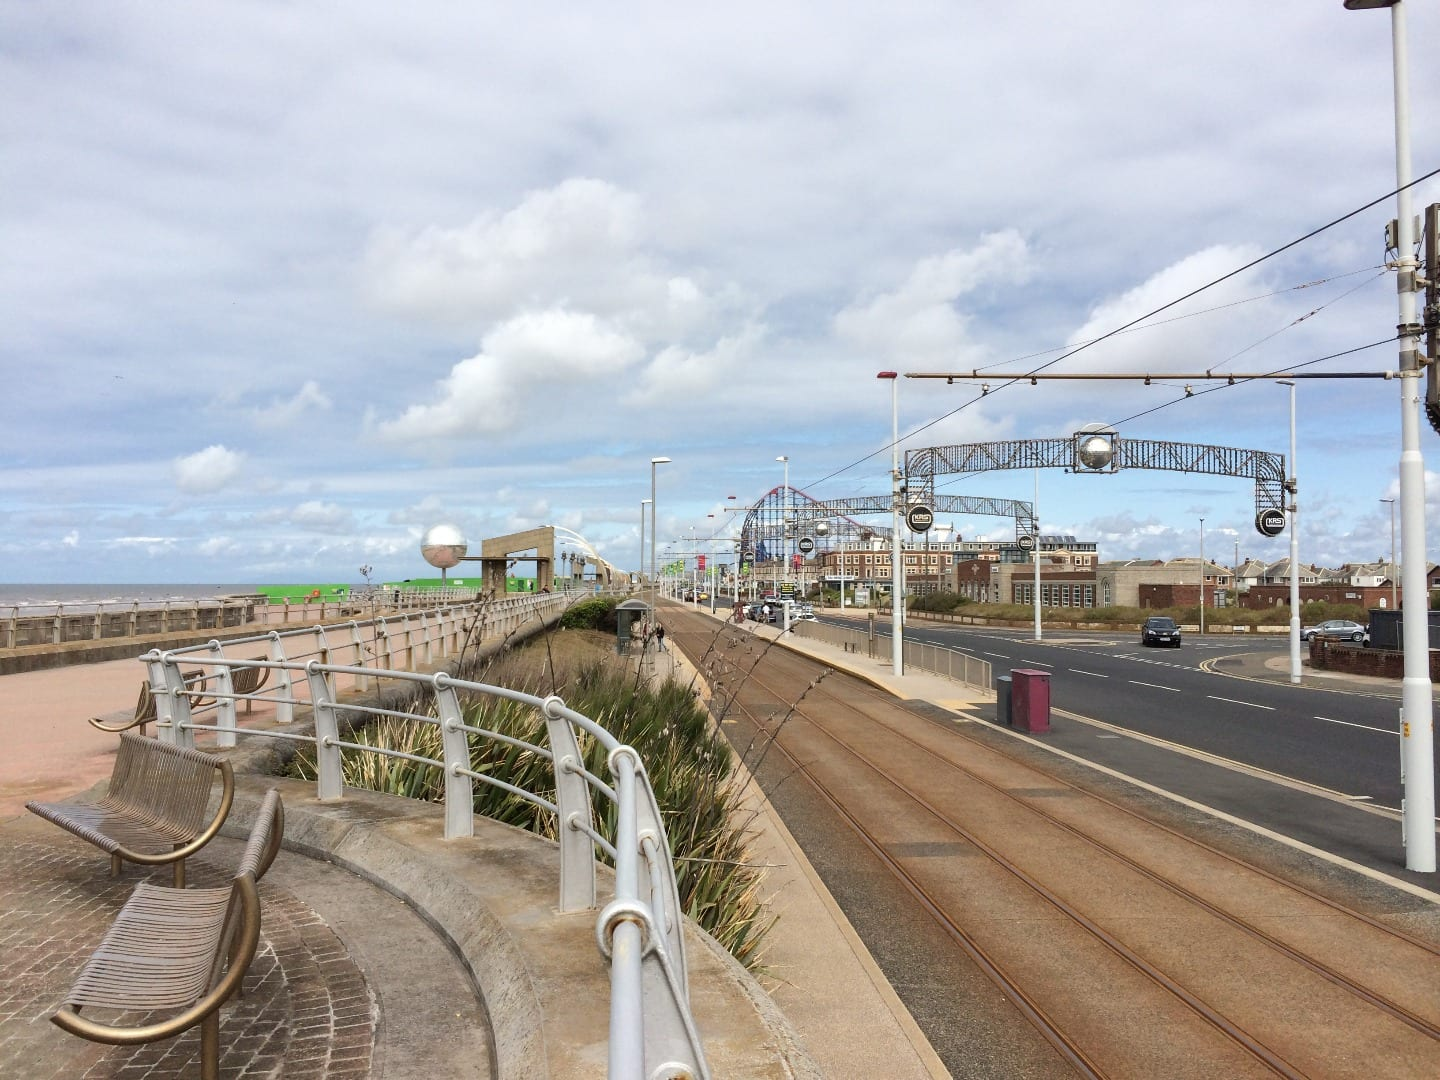 New South Promenade Blackpool, part of the Fylde Coast seafront